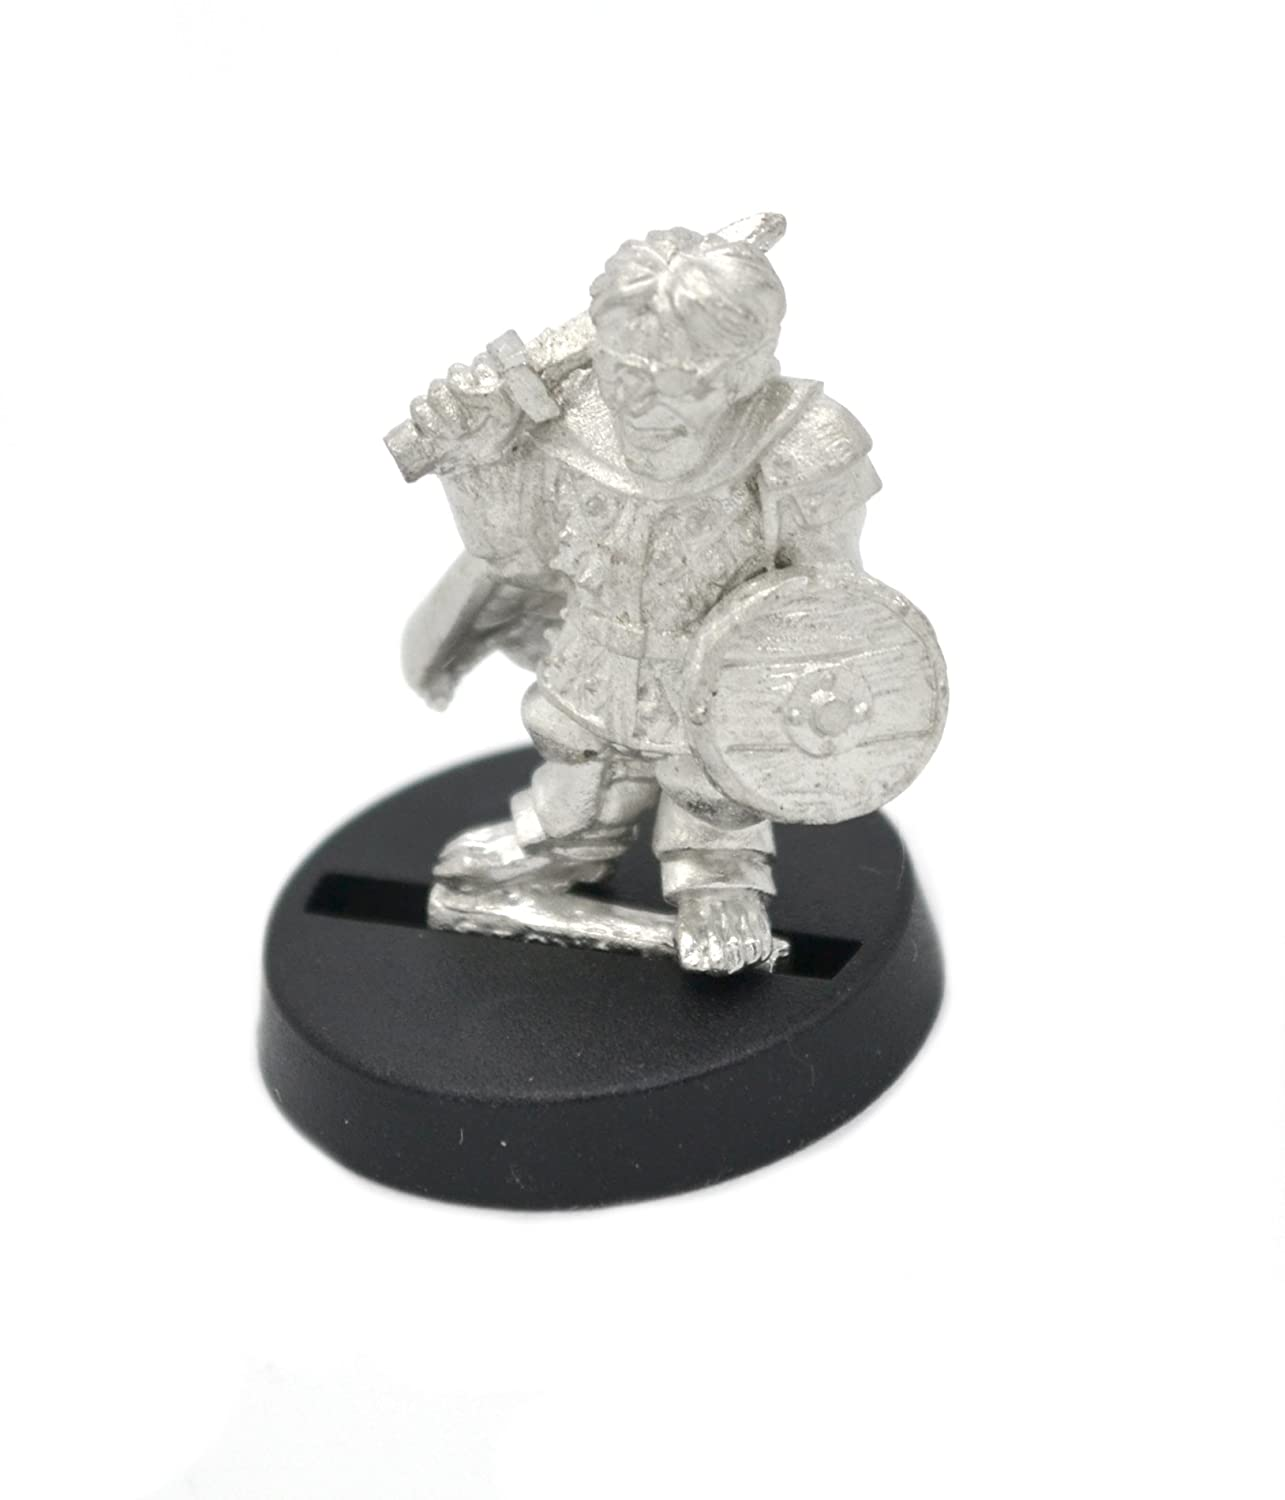 for 28mm Scale Table Top War Games Stonehaven Halfling Soldier with Glasses Miniature Figure Made in USA